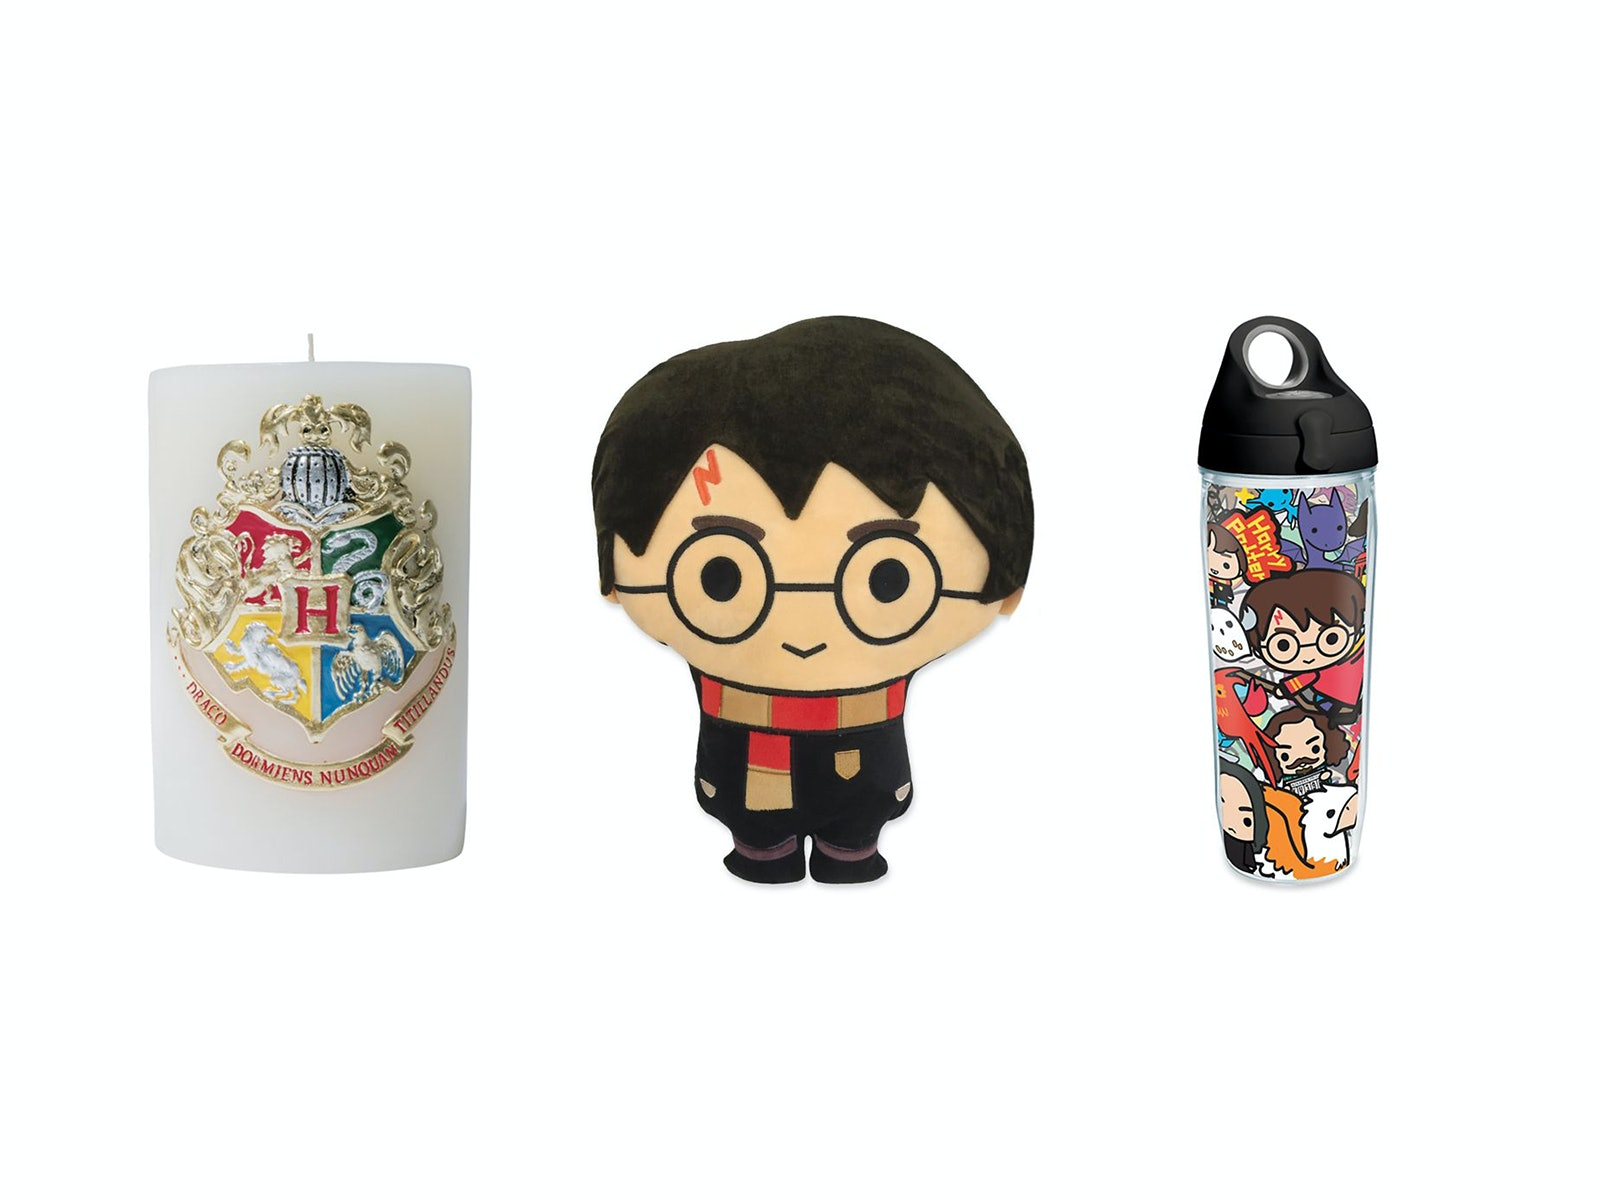 Bed Bath Beyonds Harry Potter Merchandise Is Going To Make Holiday Shopping So Easy